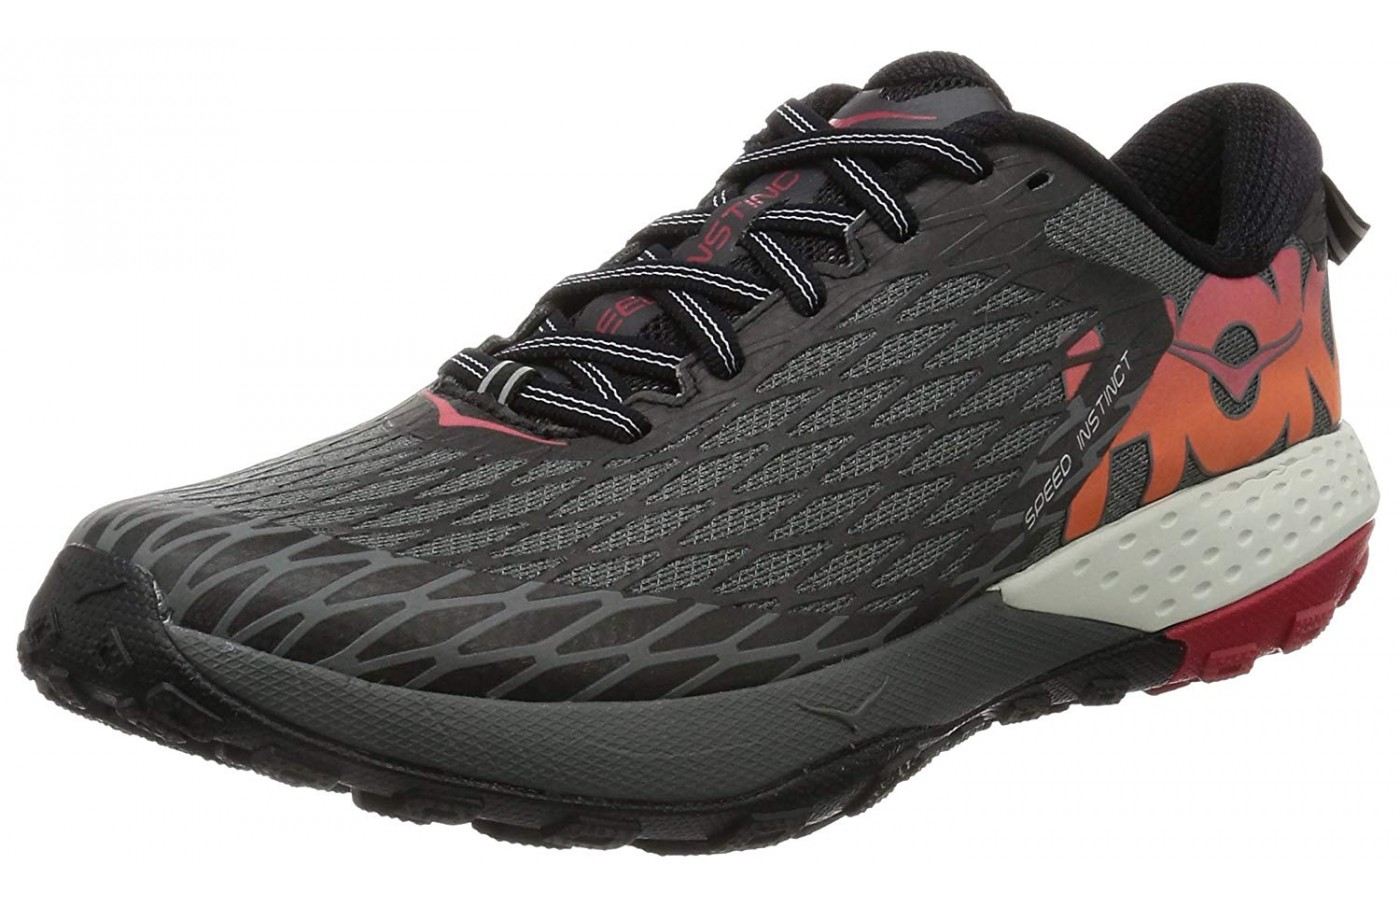 Hoka One One Speed Instinct 3/4